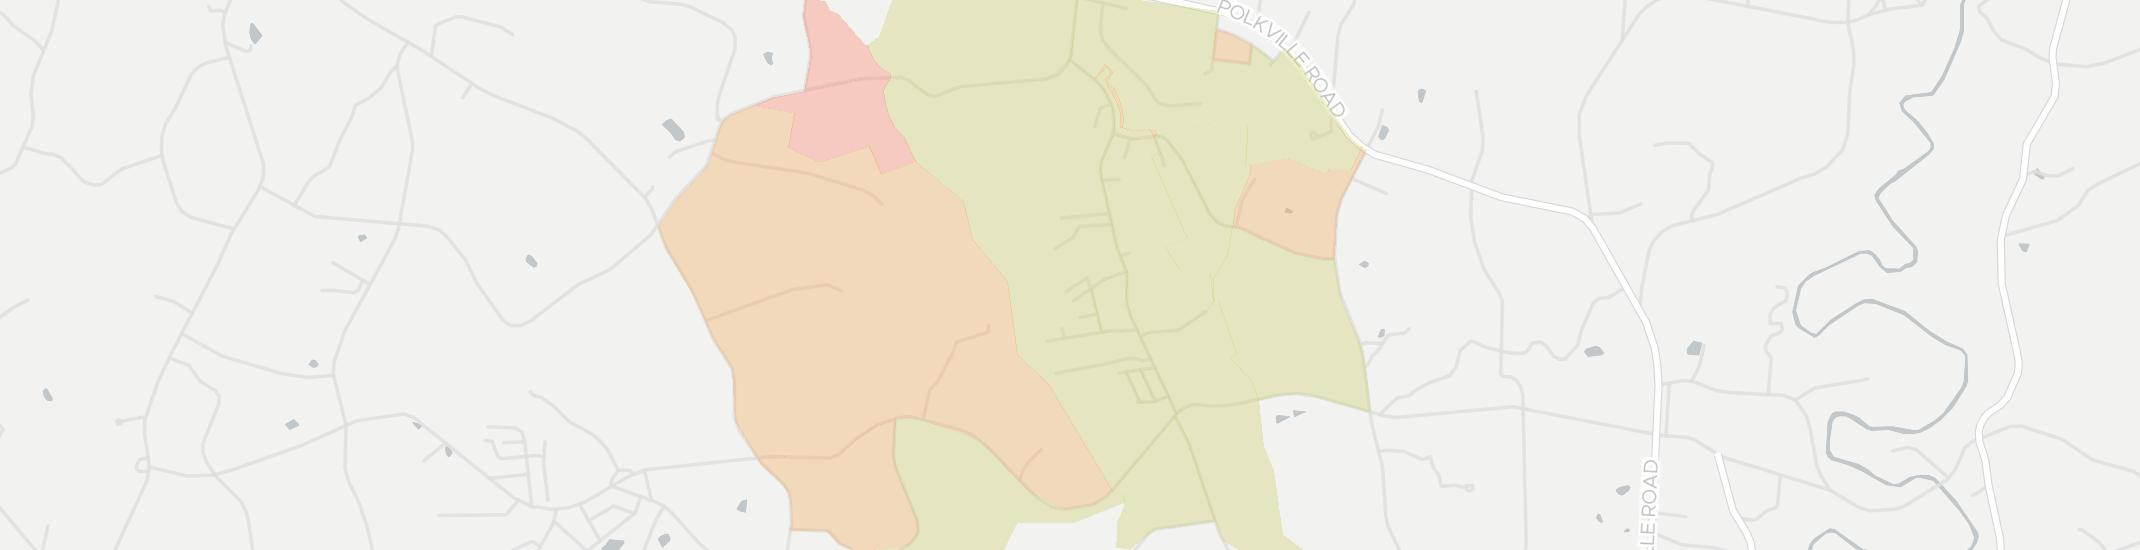 Kingstown Internet Competition Map. Click for interactive map.